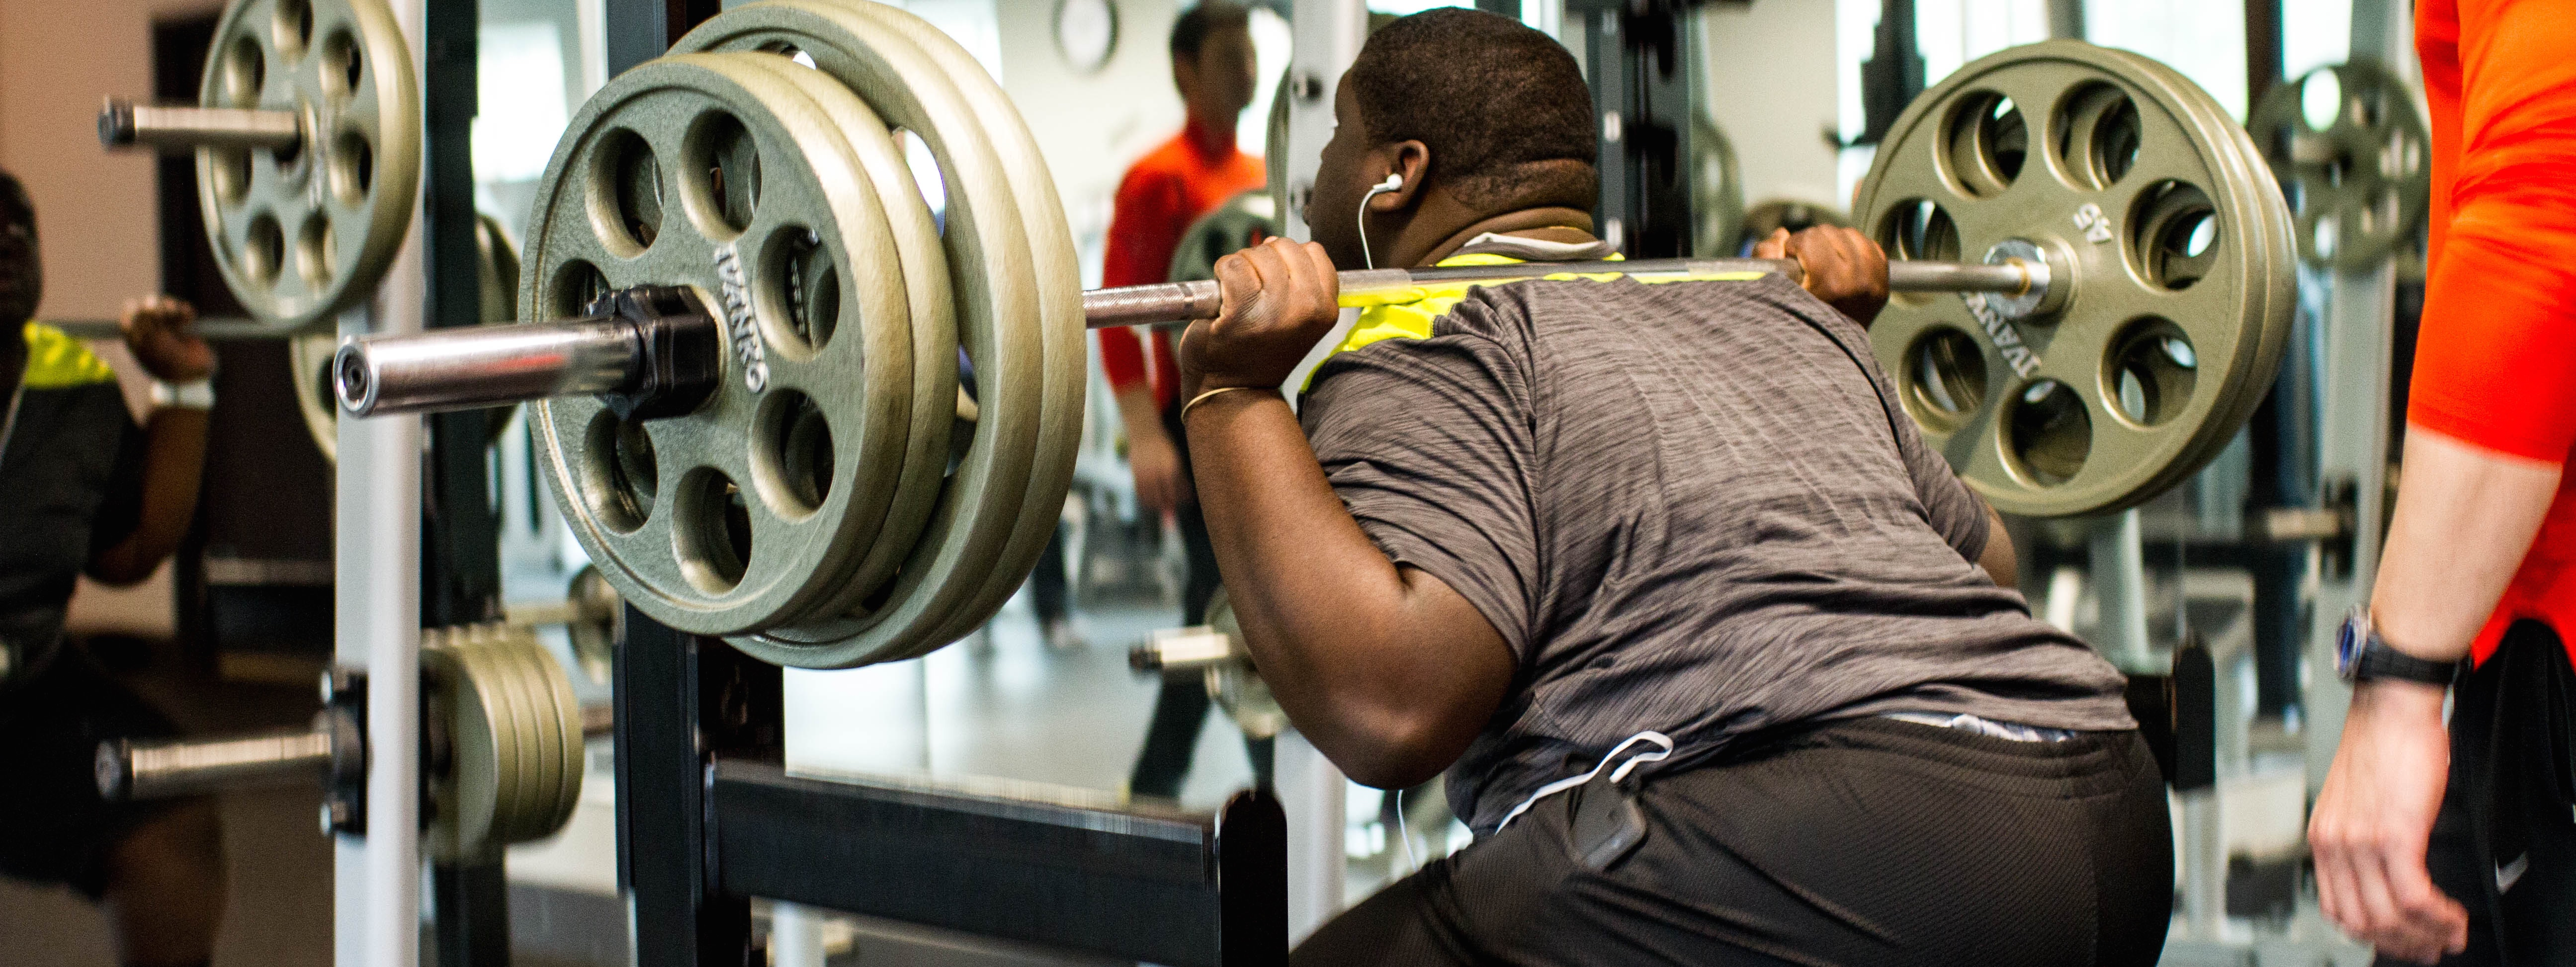 Weight training with a personal trainer at Core Results